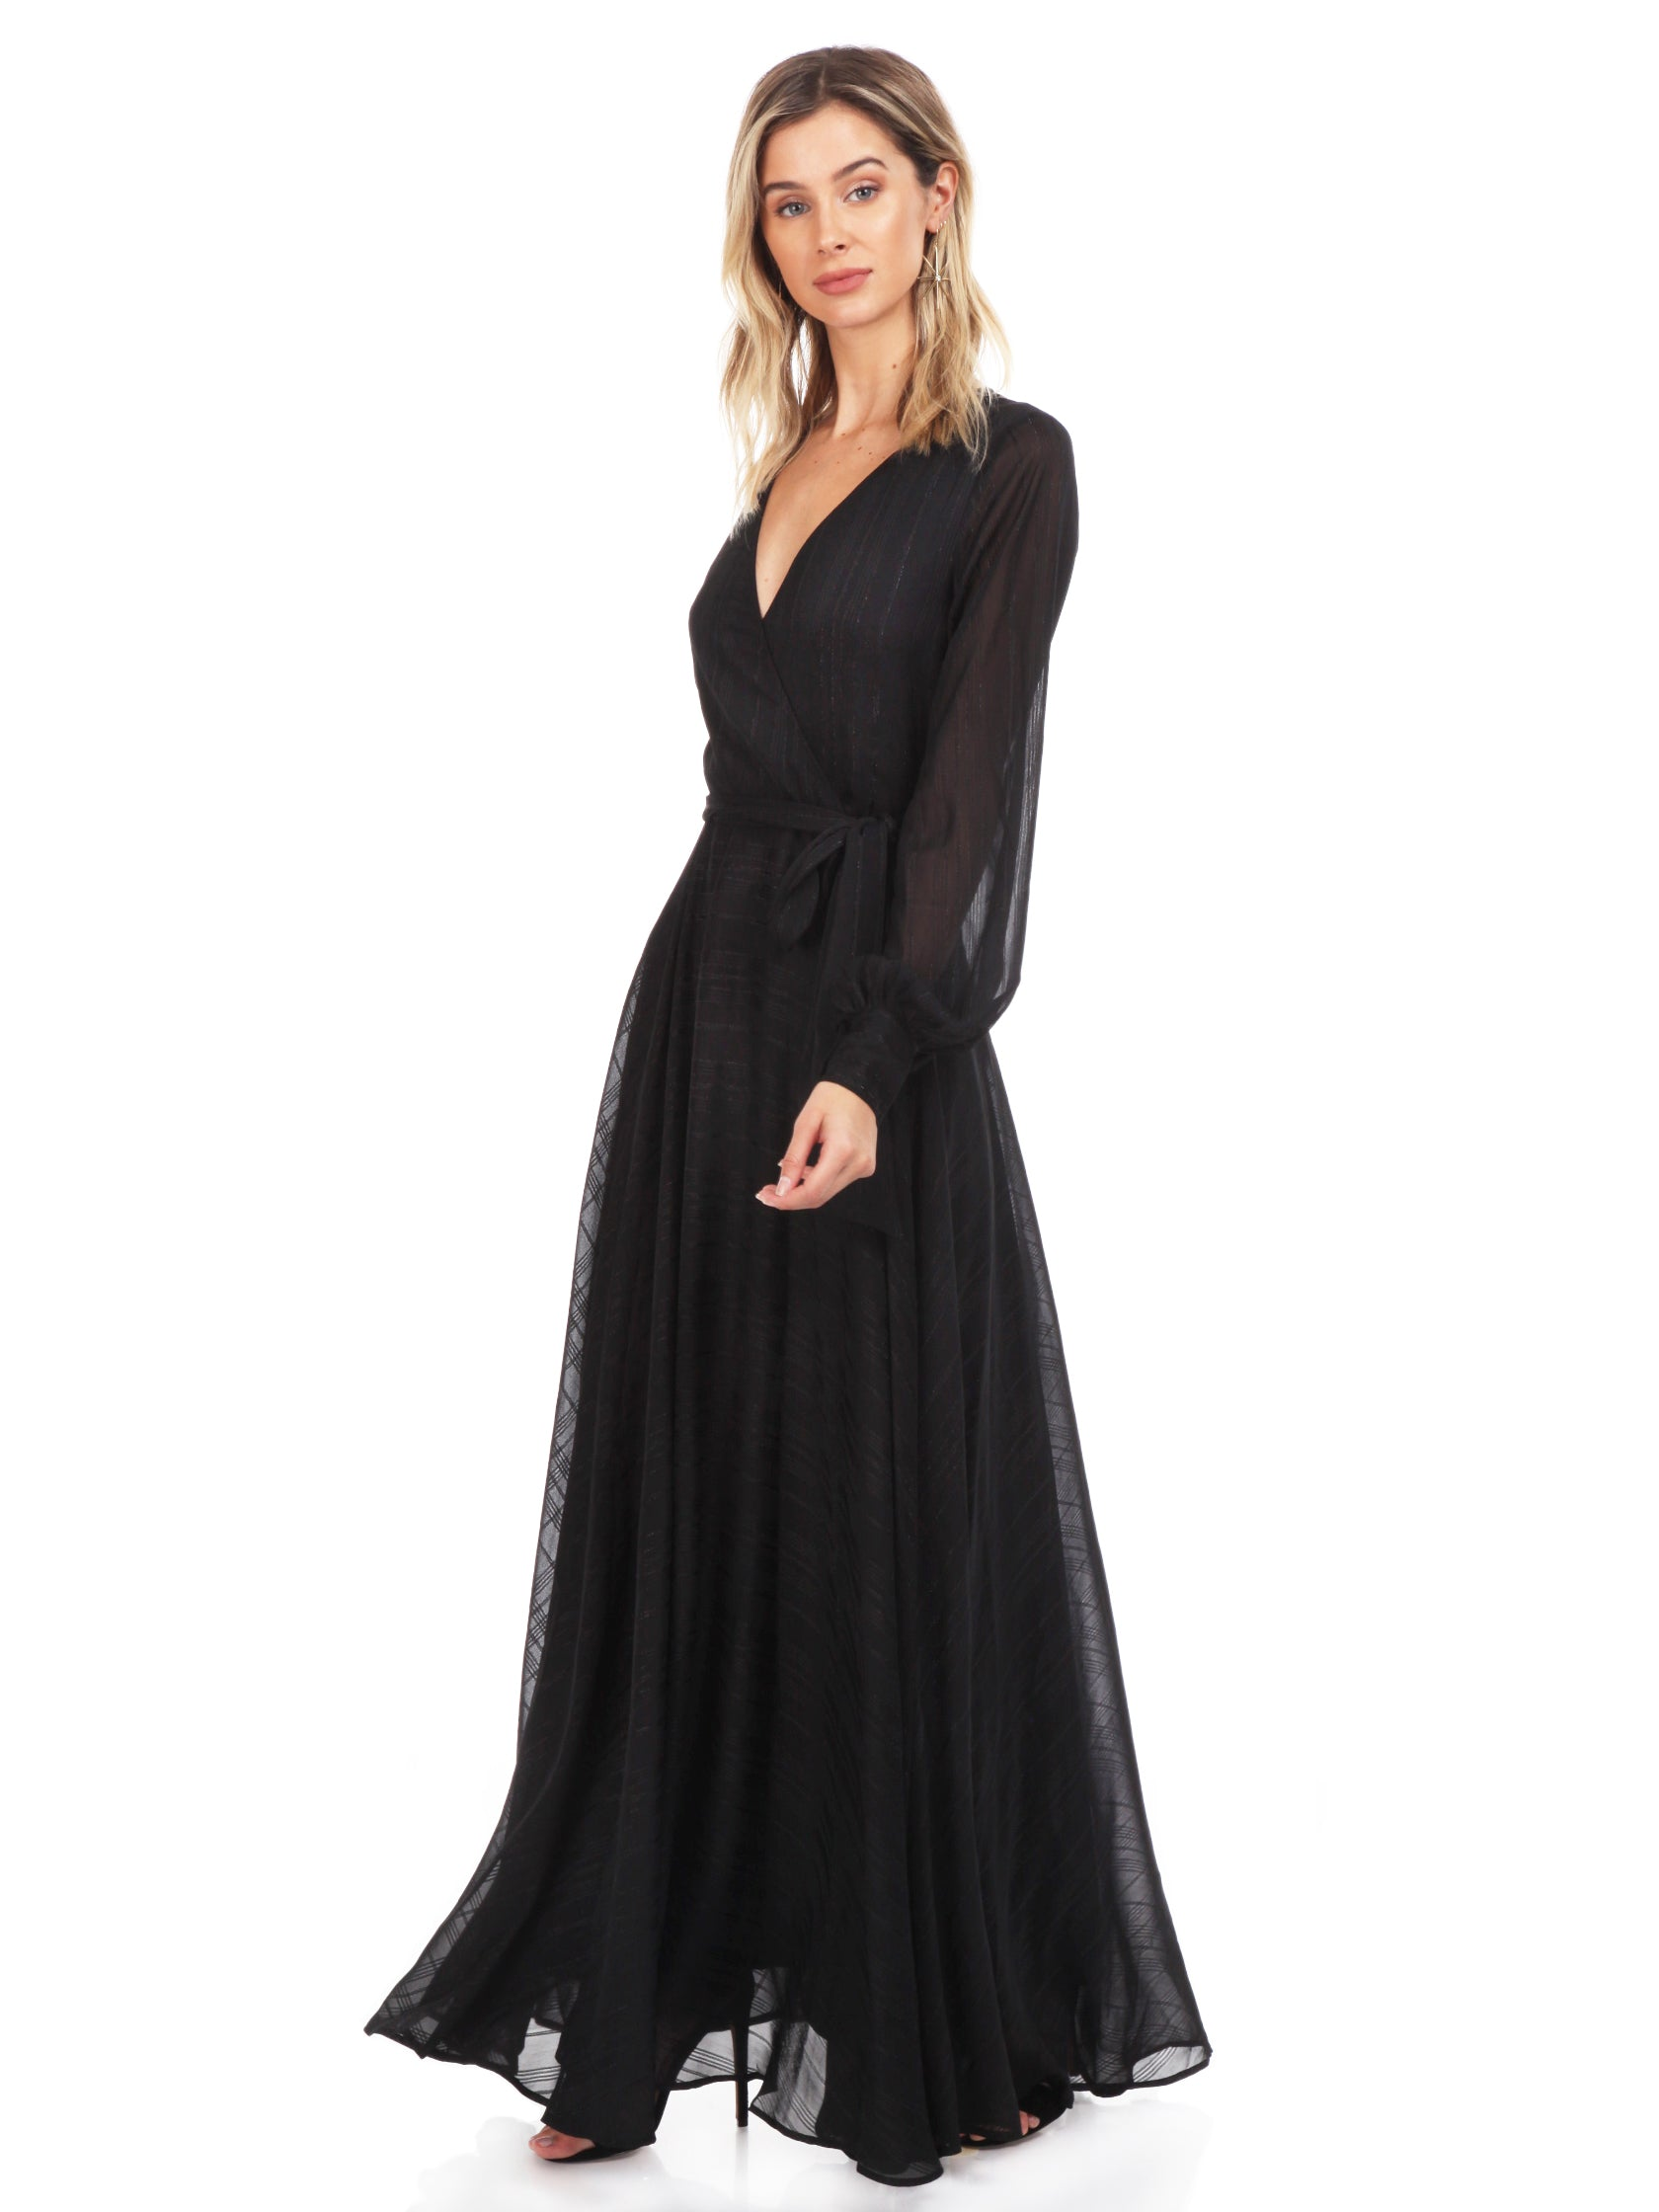 Woman wearing a dress rental from YUMI KIM called Giselle Maxi Dress